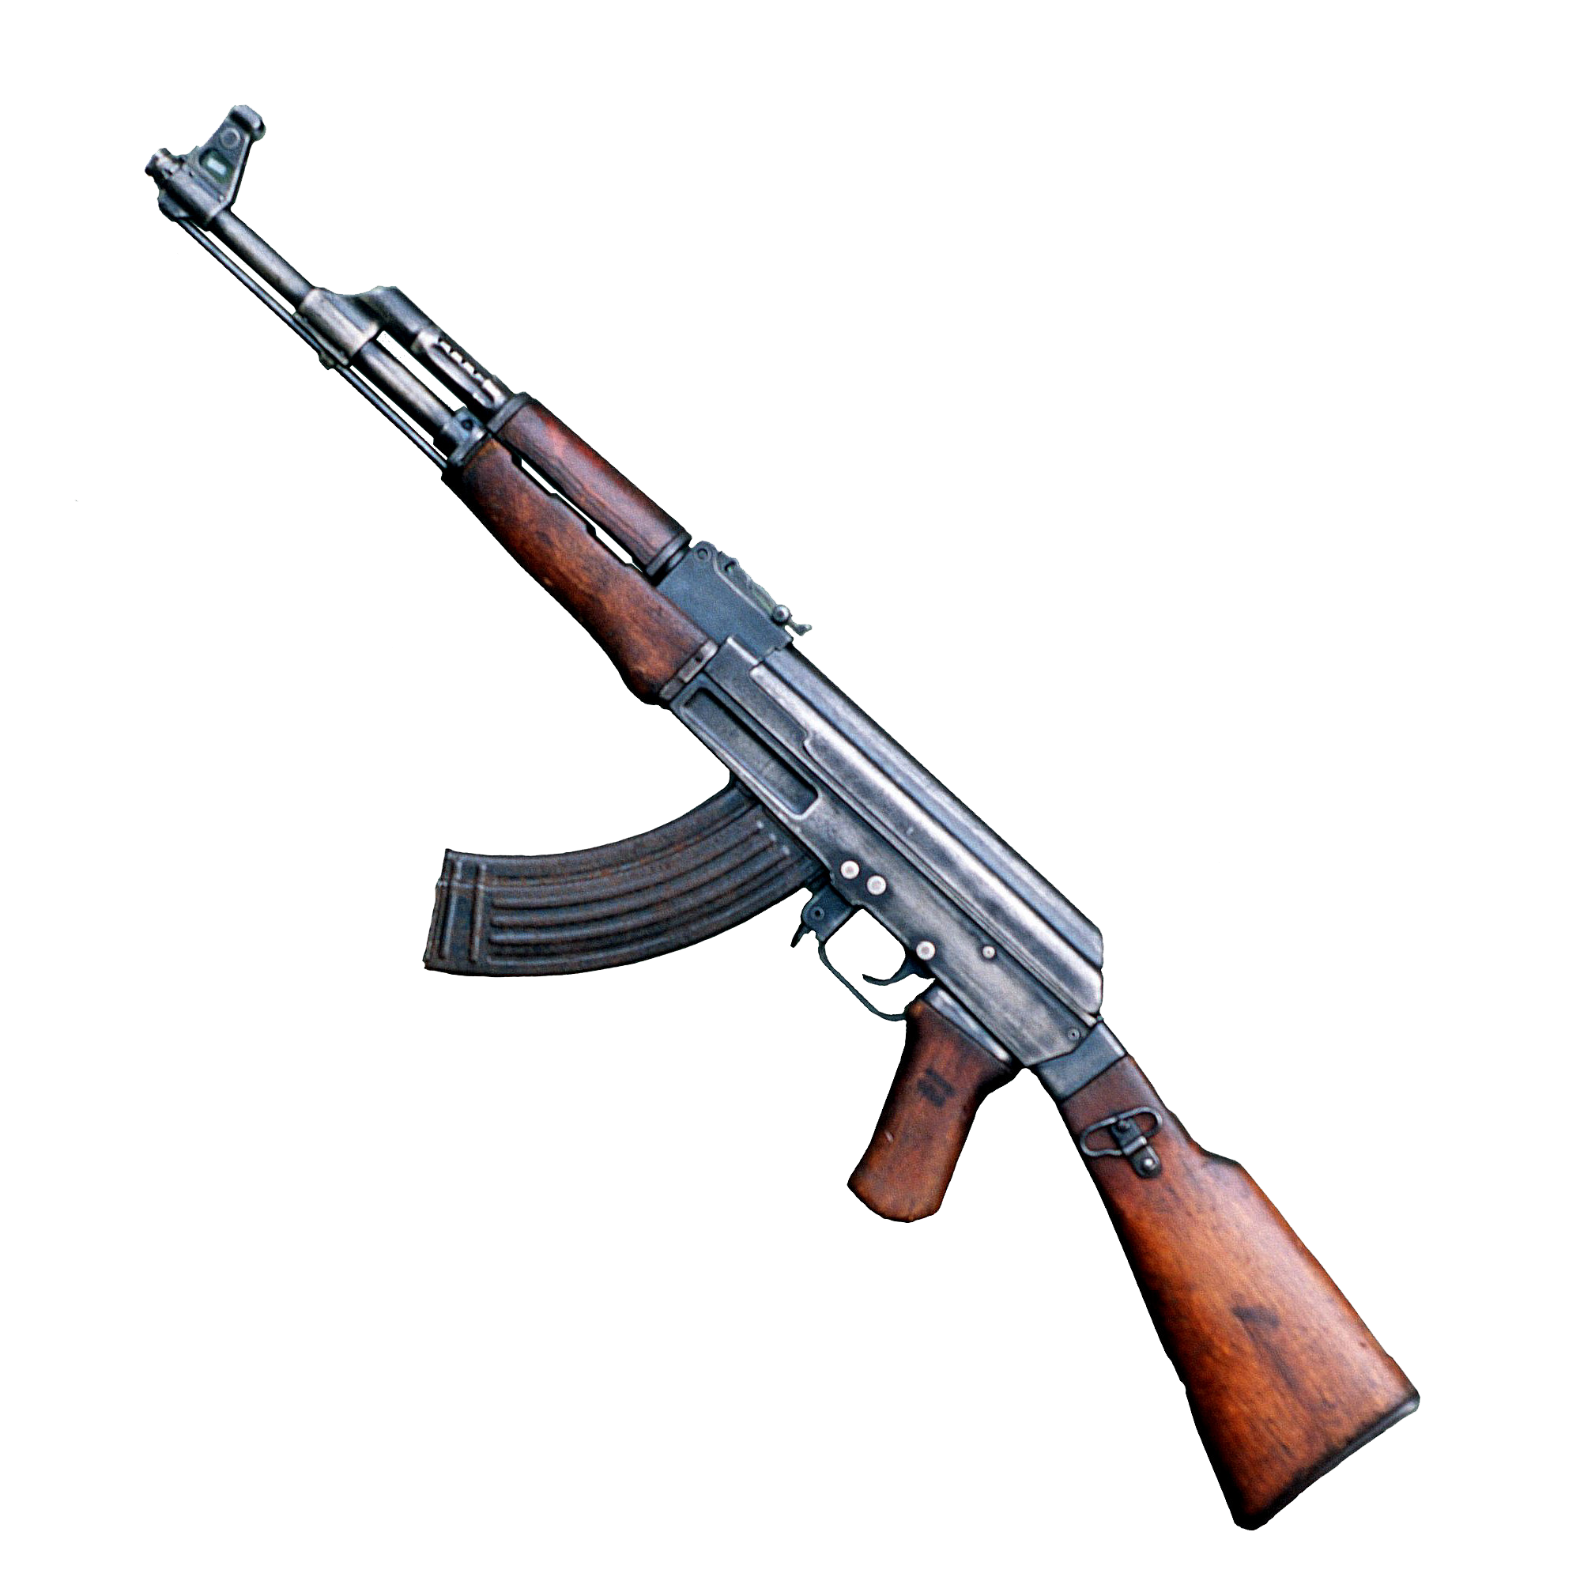 ak 47, gun, weapon png